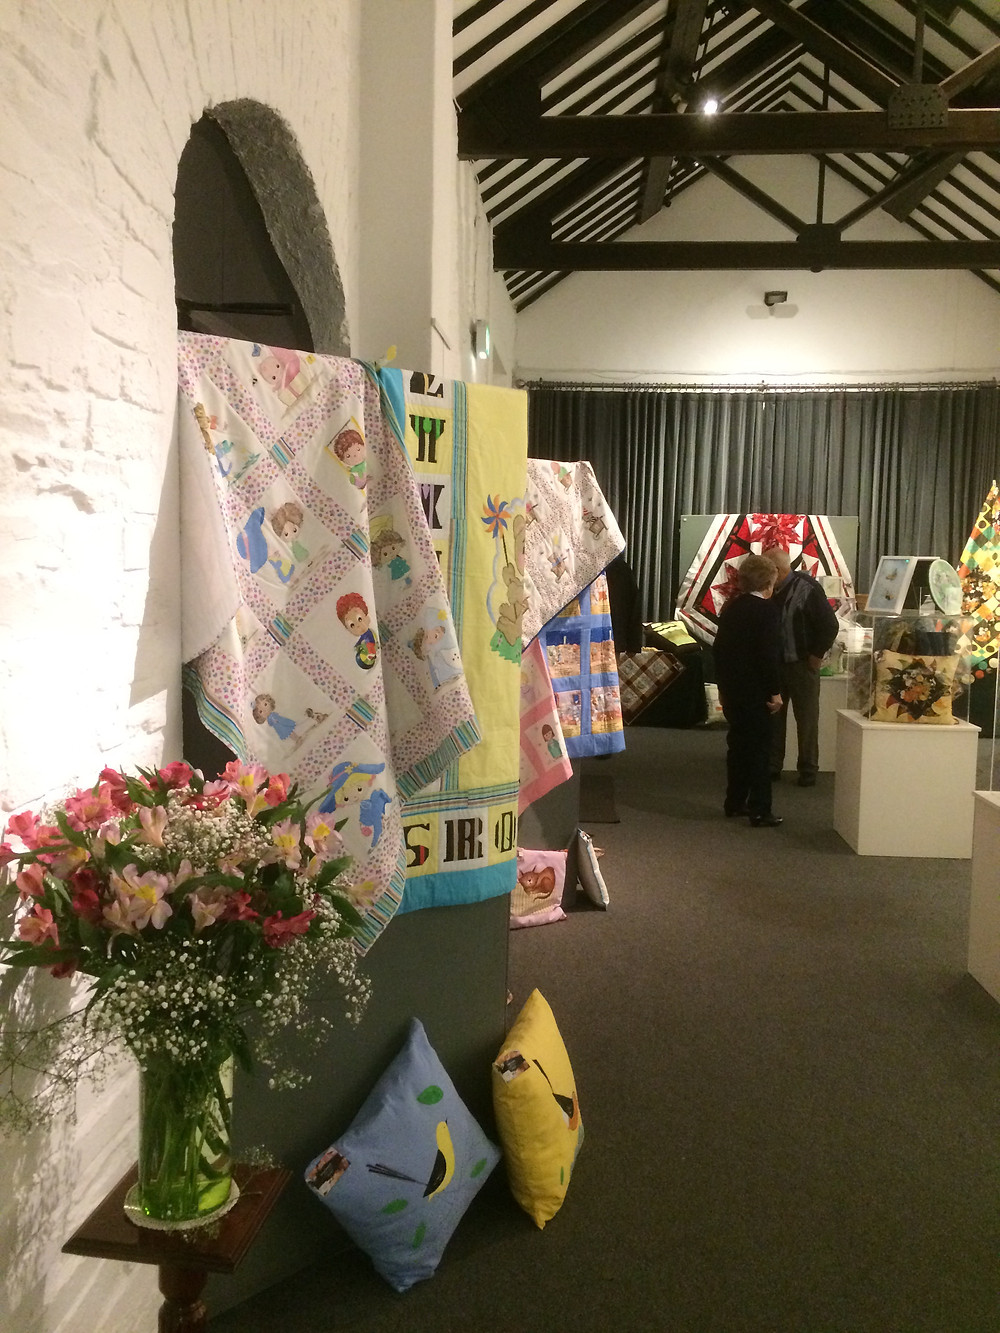 The textile exhibition is open!! Come along to the Long Gallery at the North Down Museum - its well worth a visit and you might even find something lovely to help with ideas for Christmas!